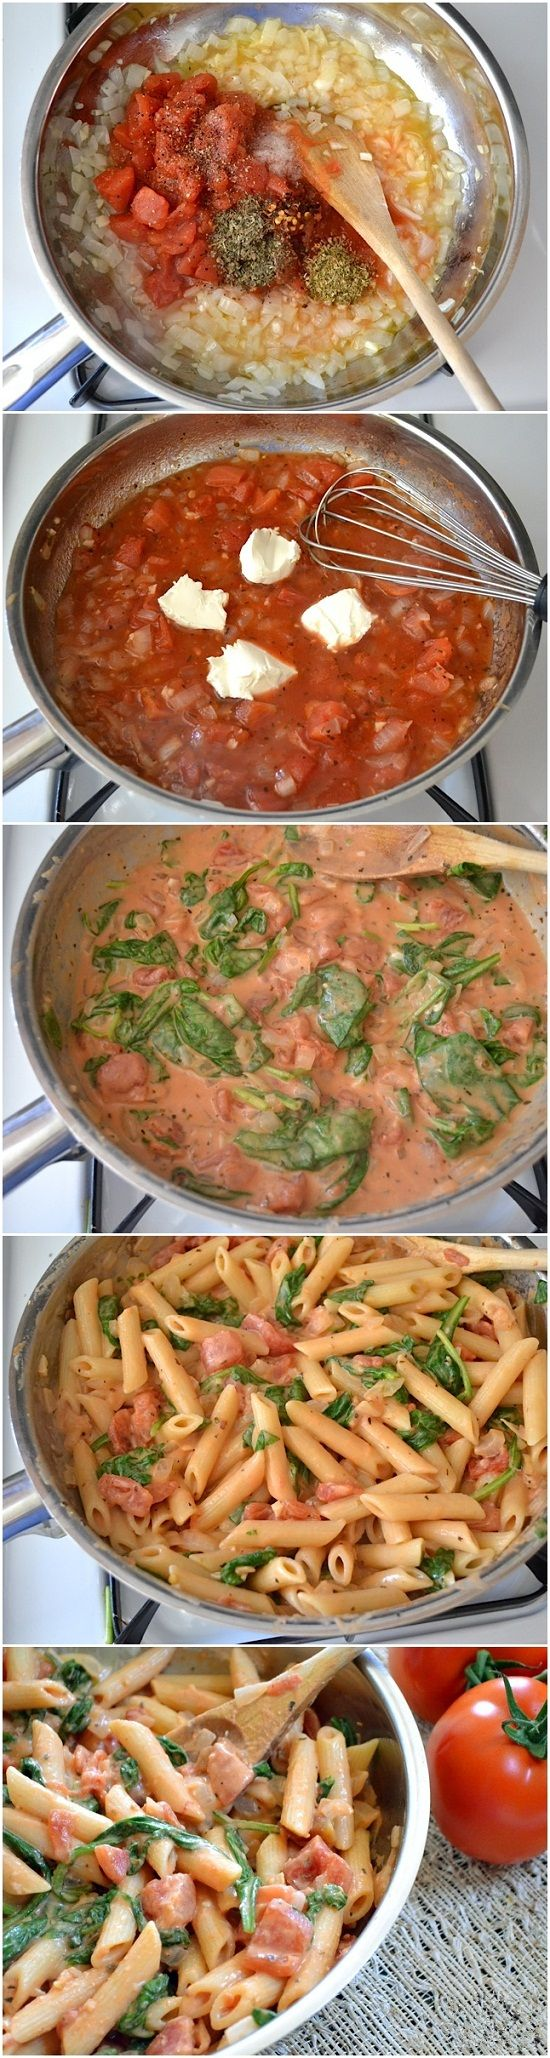 Ingredients      1 Tbsp olive oil     1 small onion     2 cloves garlic     1 (15 oz.) can diced tomatoes     ½ tsp dried oregano     ½ tsp dried basil     pinch red pepper flakes (optional)     freshly cracked pepper to taste     ½ tsp salt     2 Tbsp tomato paste     2 oz. cream cheese     ¼ cup grated Parmesan     ½ lb. penne pasta     ½ (9 oz.) bag fresh spinach